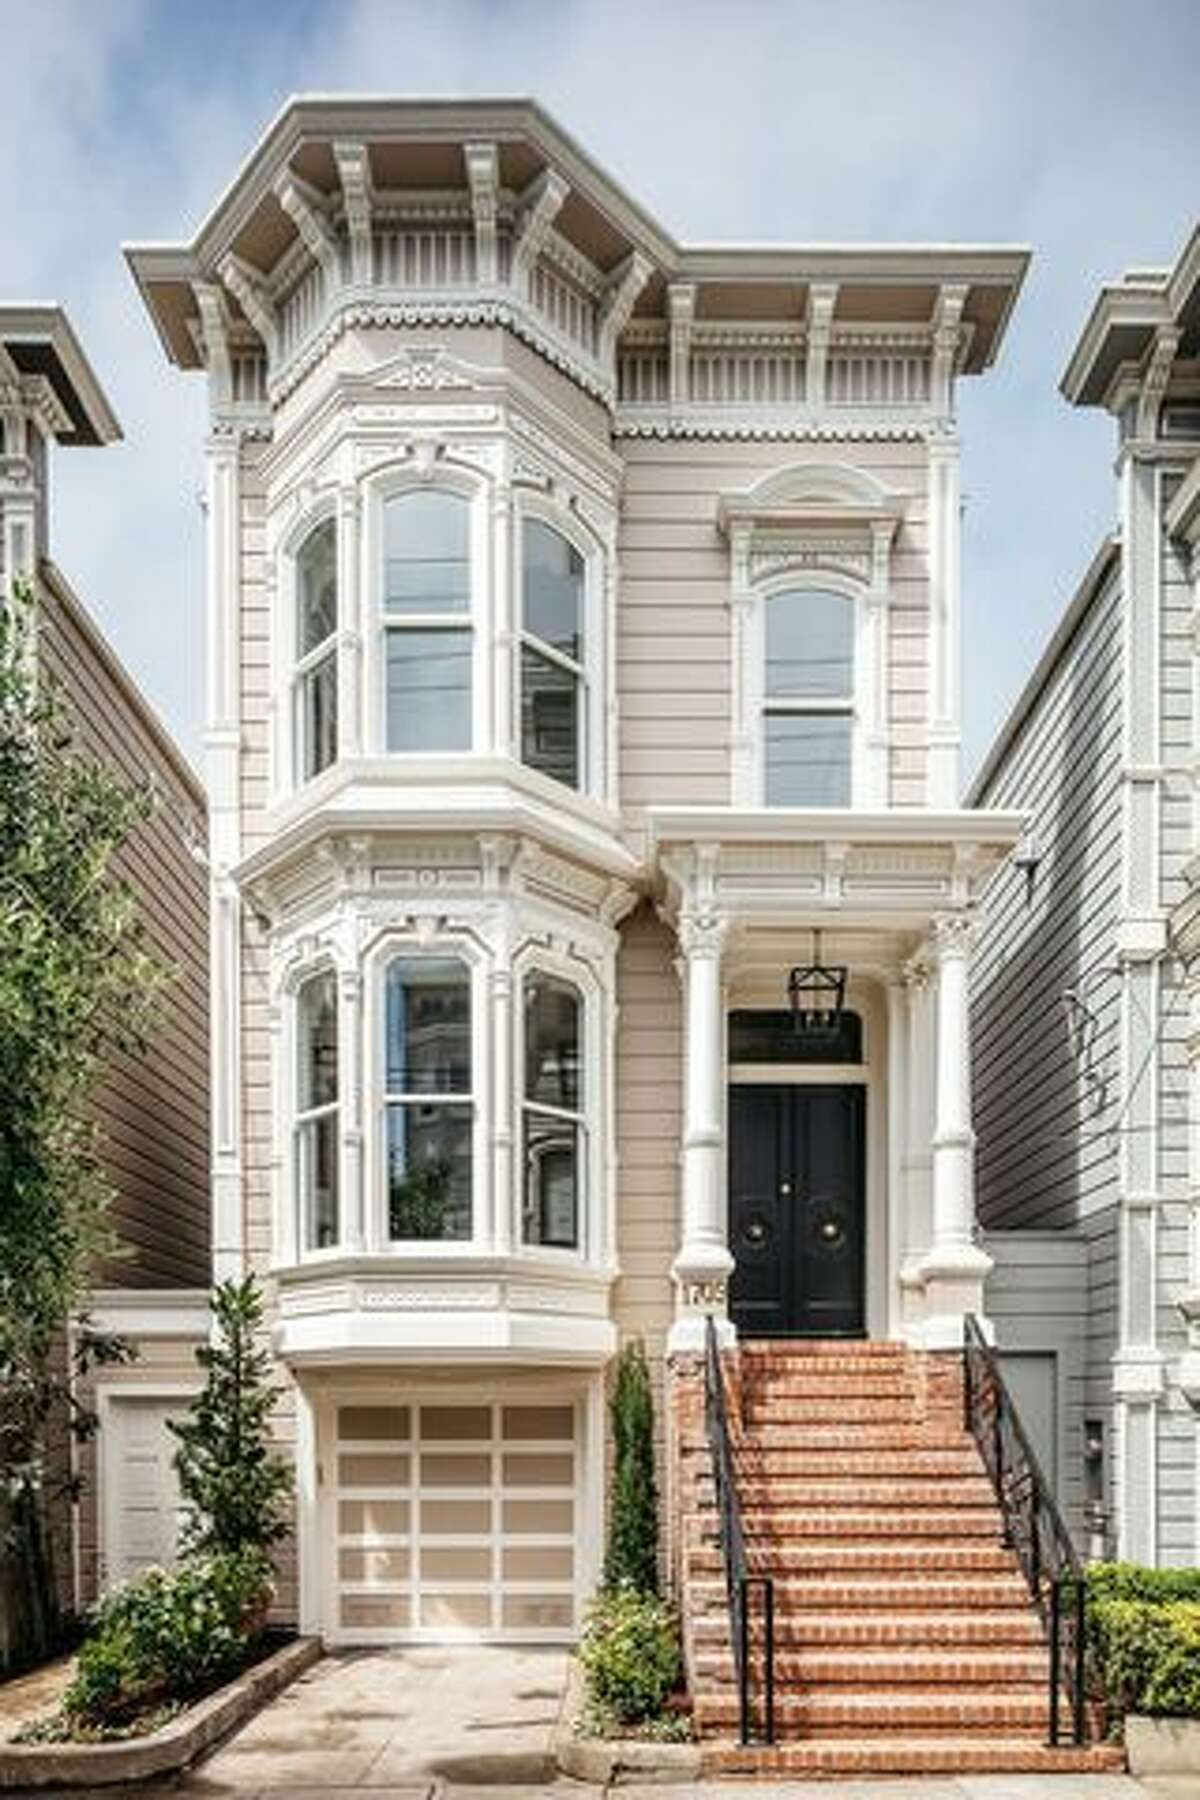 """The famous """"Full House"""" home in San Francisco is back on the market for $5,999,999-sans the """"Full House"""" interiors."""